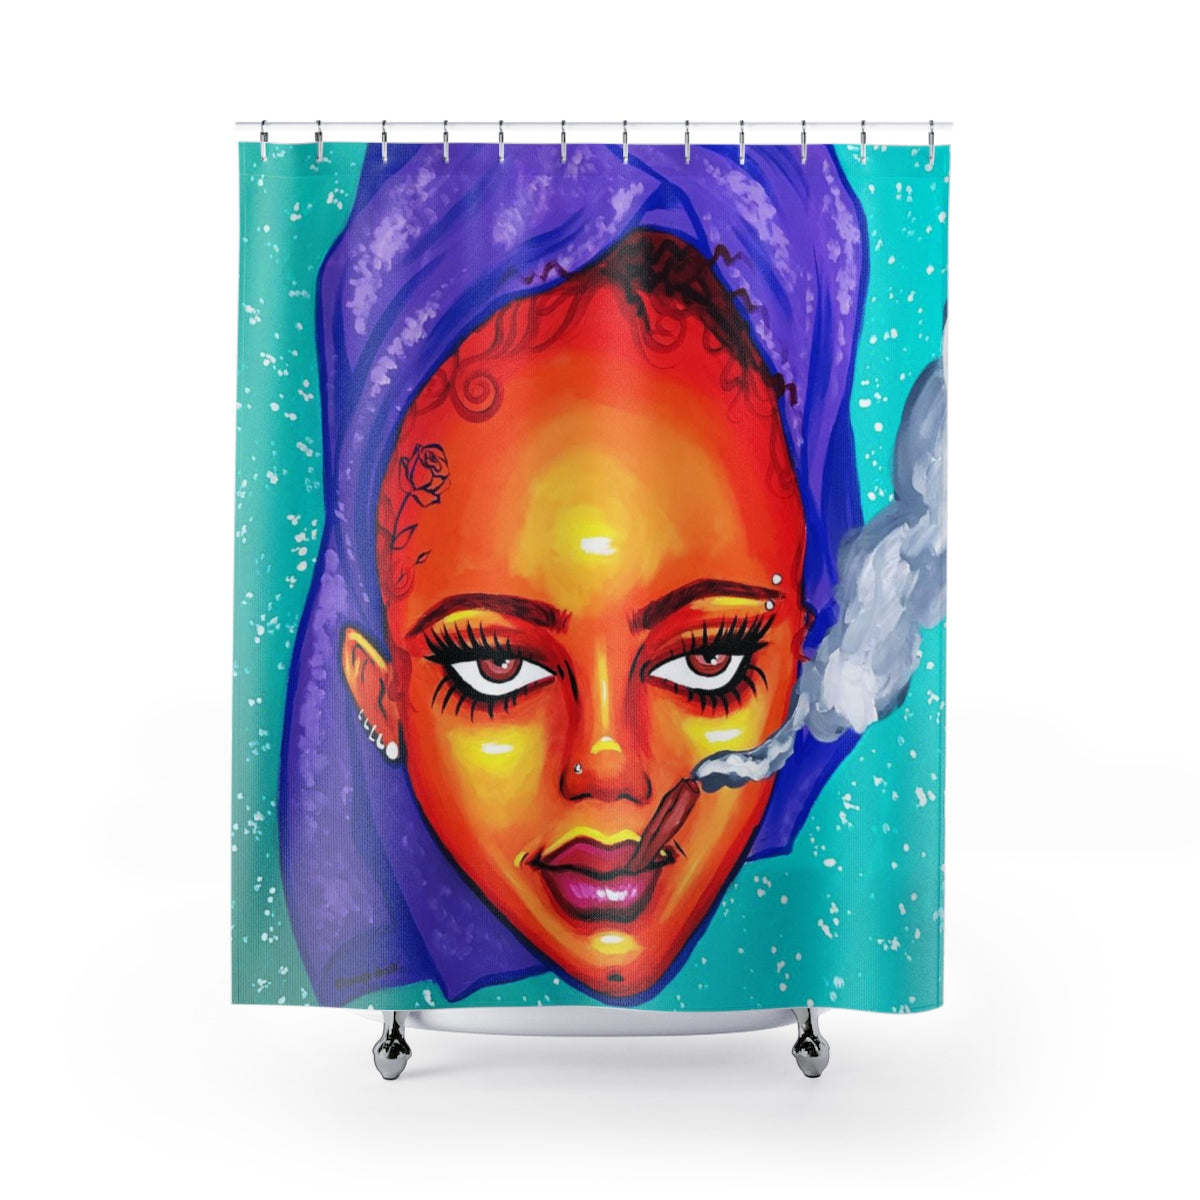 Shower Curtain / Tapestry - Bighead